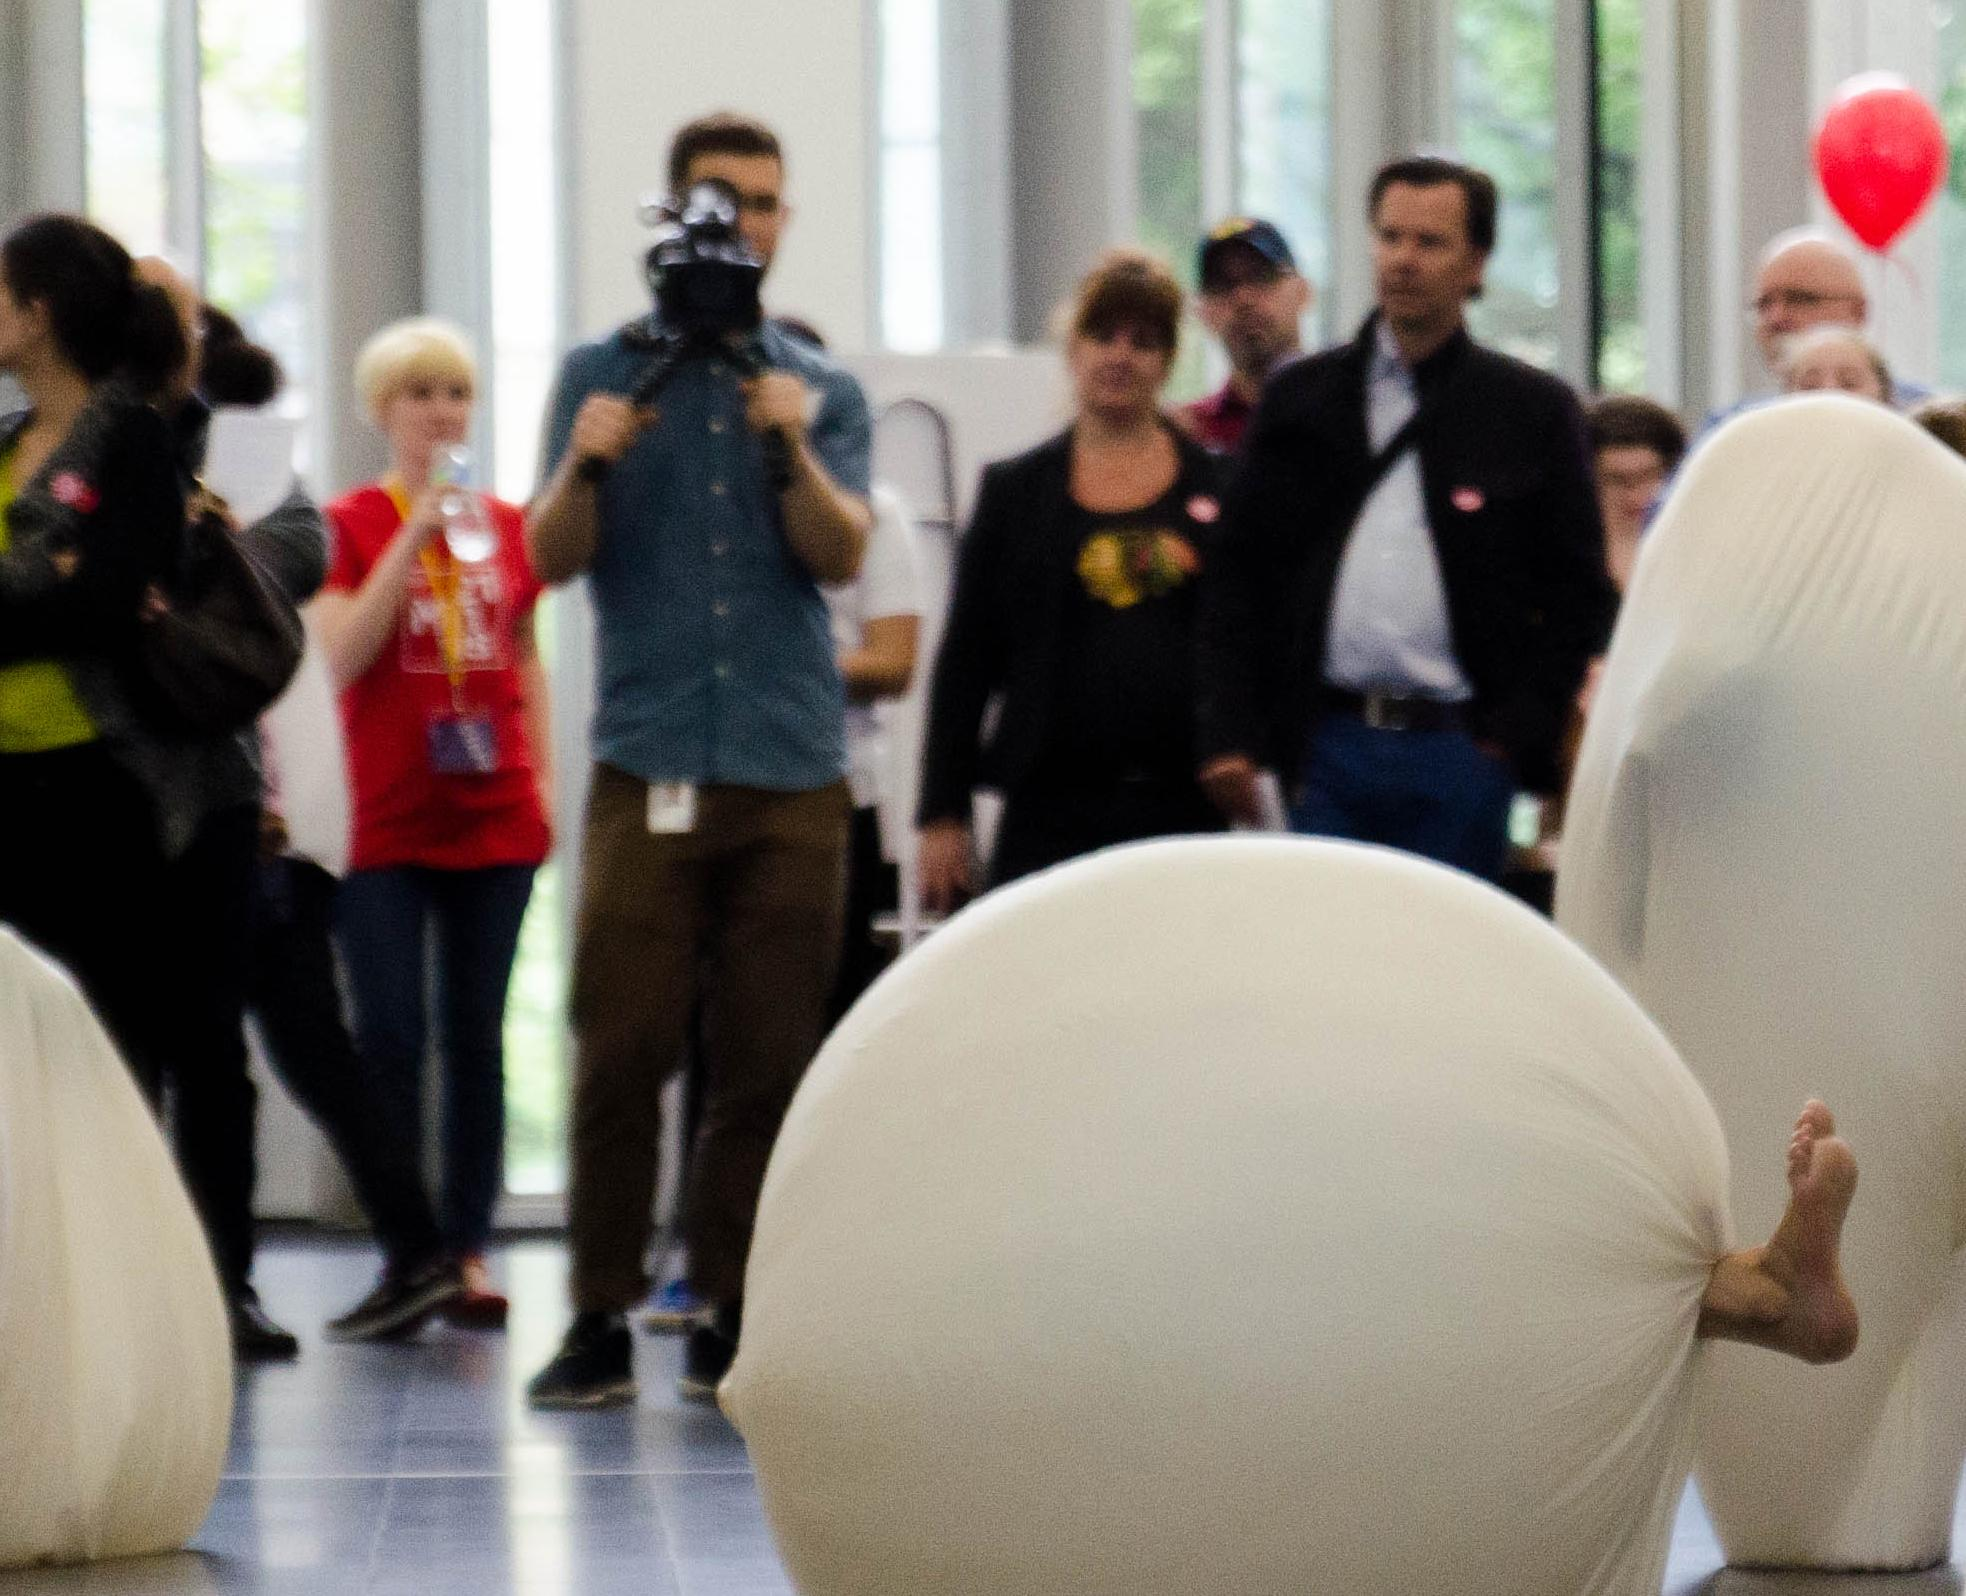 Visitors gather around performers in large cloth spheres while a cameraman films the scene.